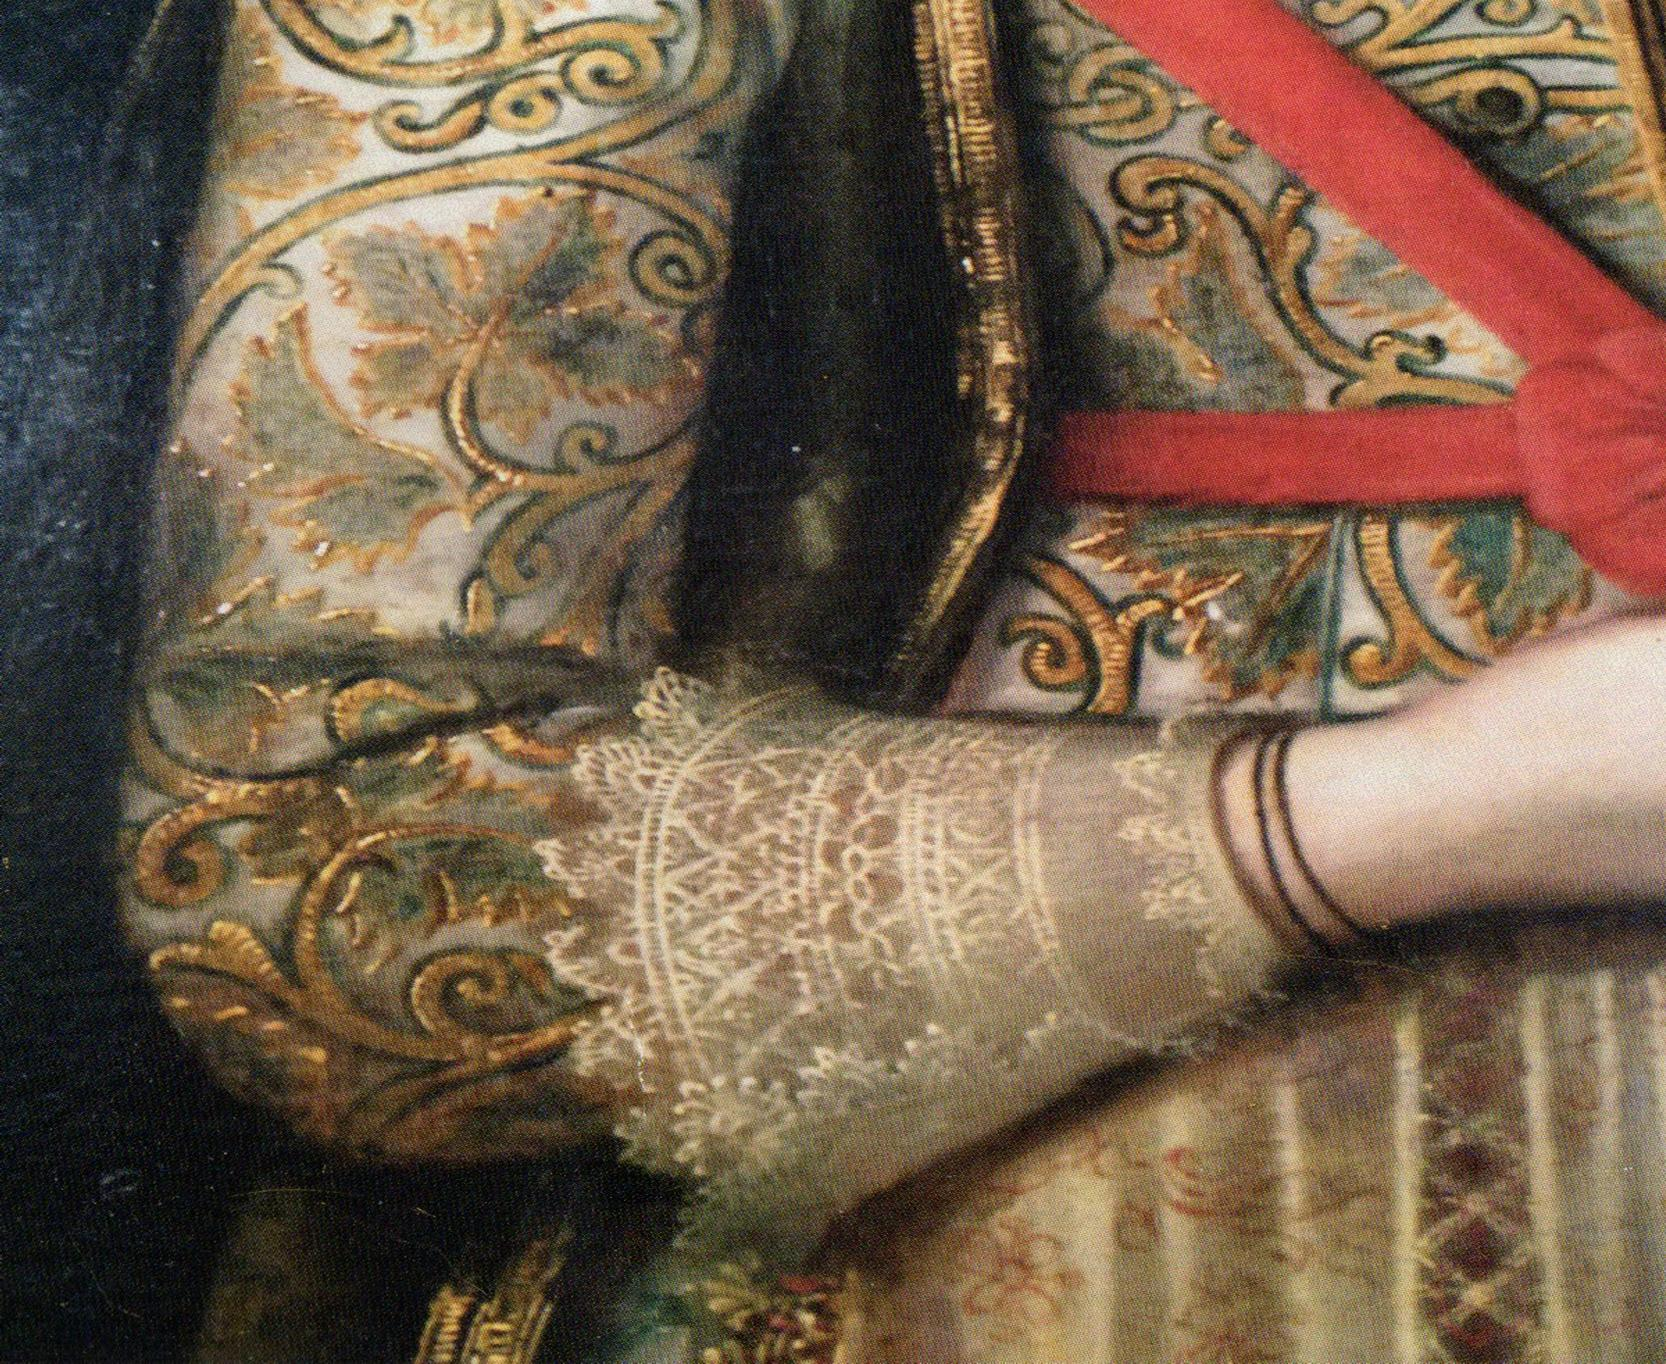 Fig 2. Detail of Lady Anne's cuff in Fig. 1.